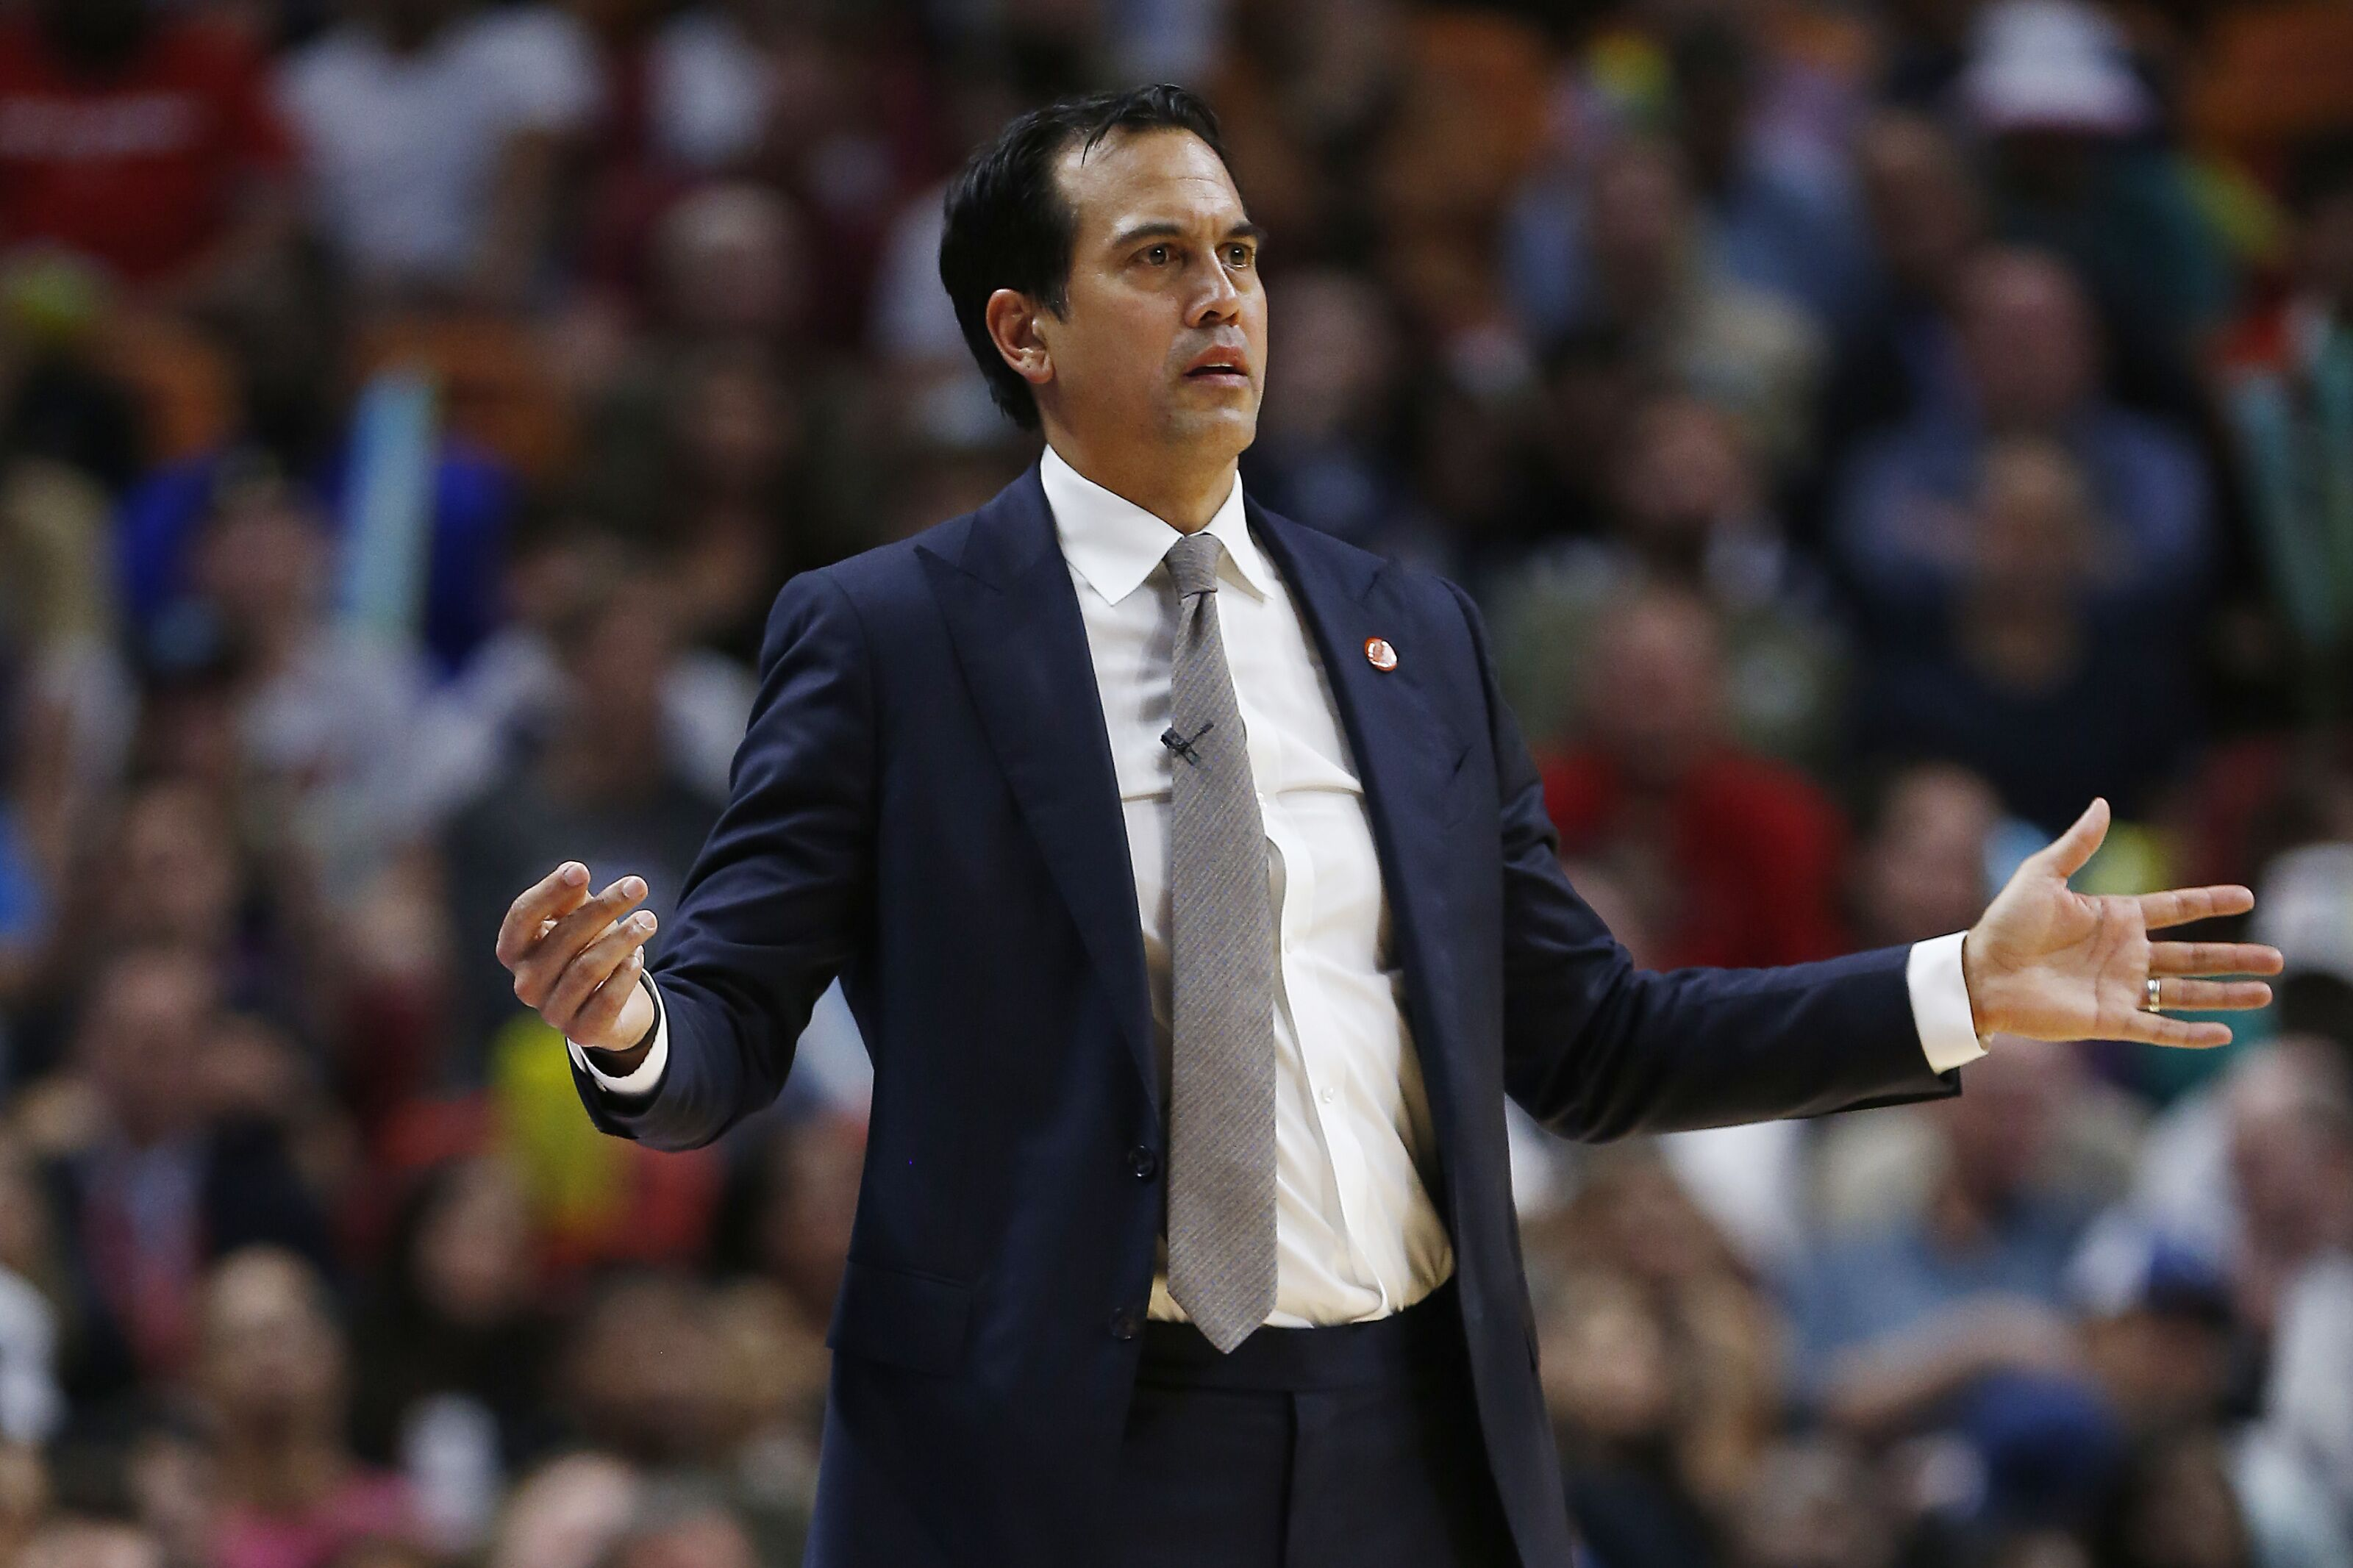 Miami Heat: Coach Spoelstra makes his feelings known about All-Star voting